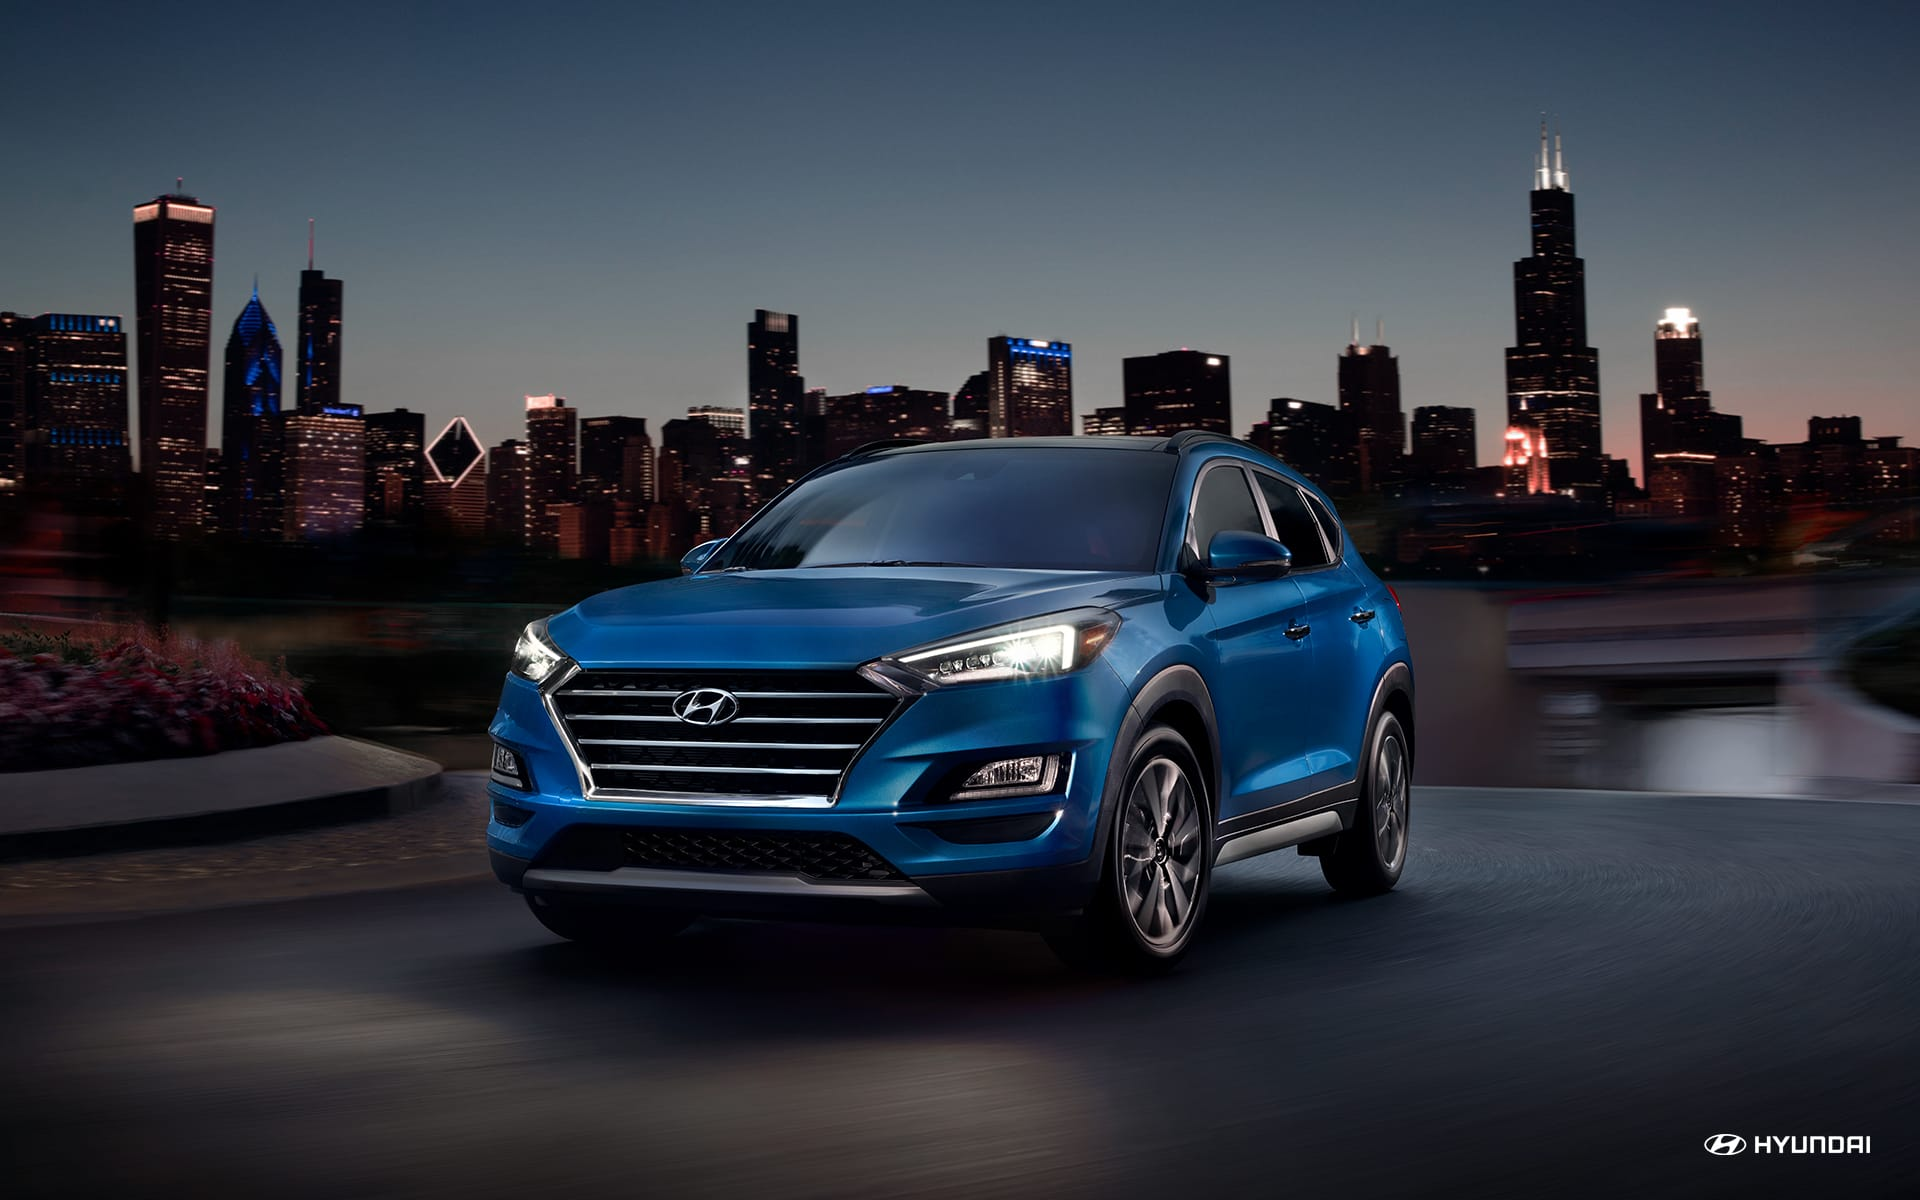 Hyundai Of Asheville >> 2019 Hyundai Tucson Accessories - Hyundai Cars Review Release Raiacars.com